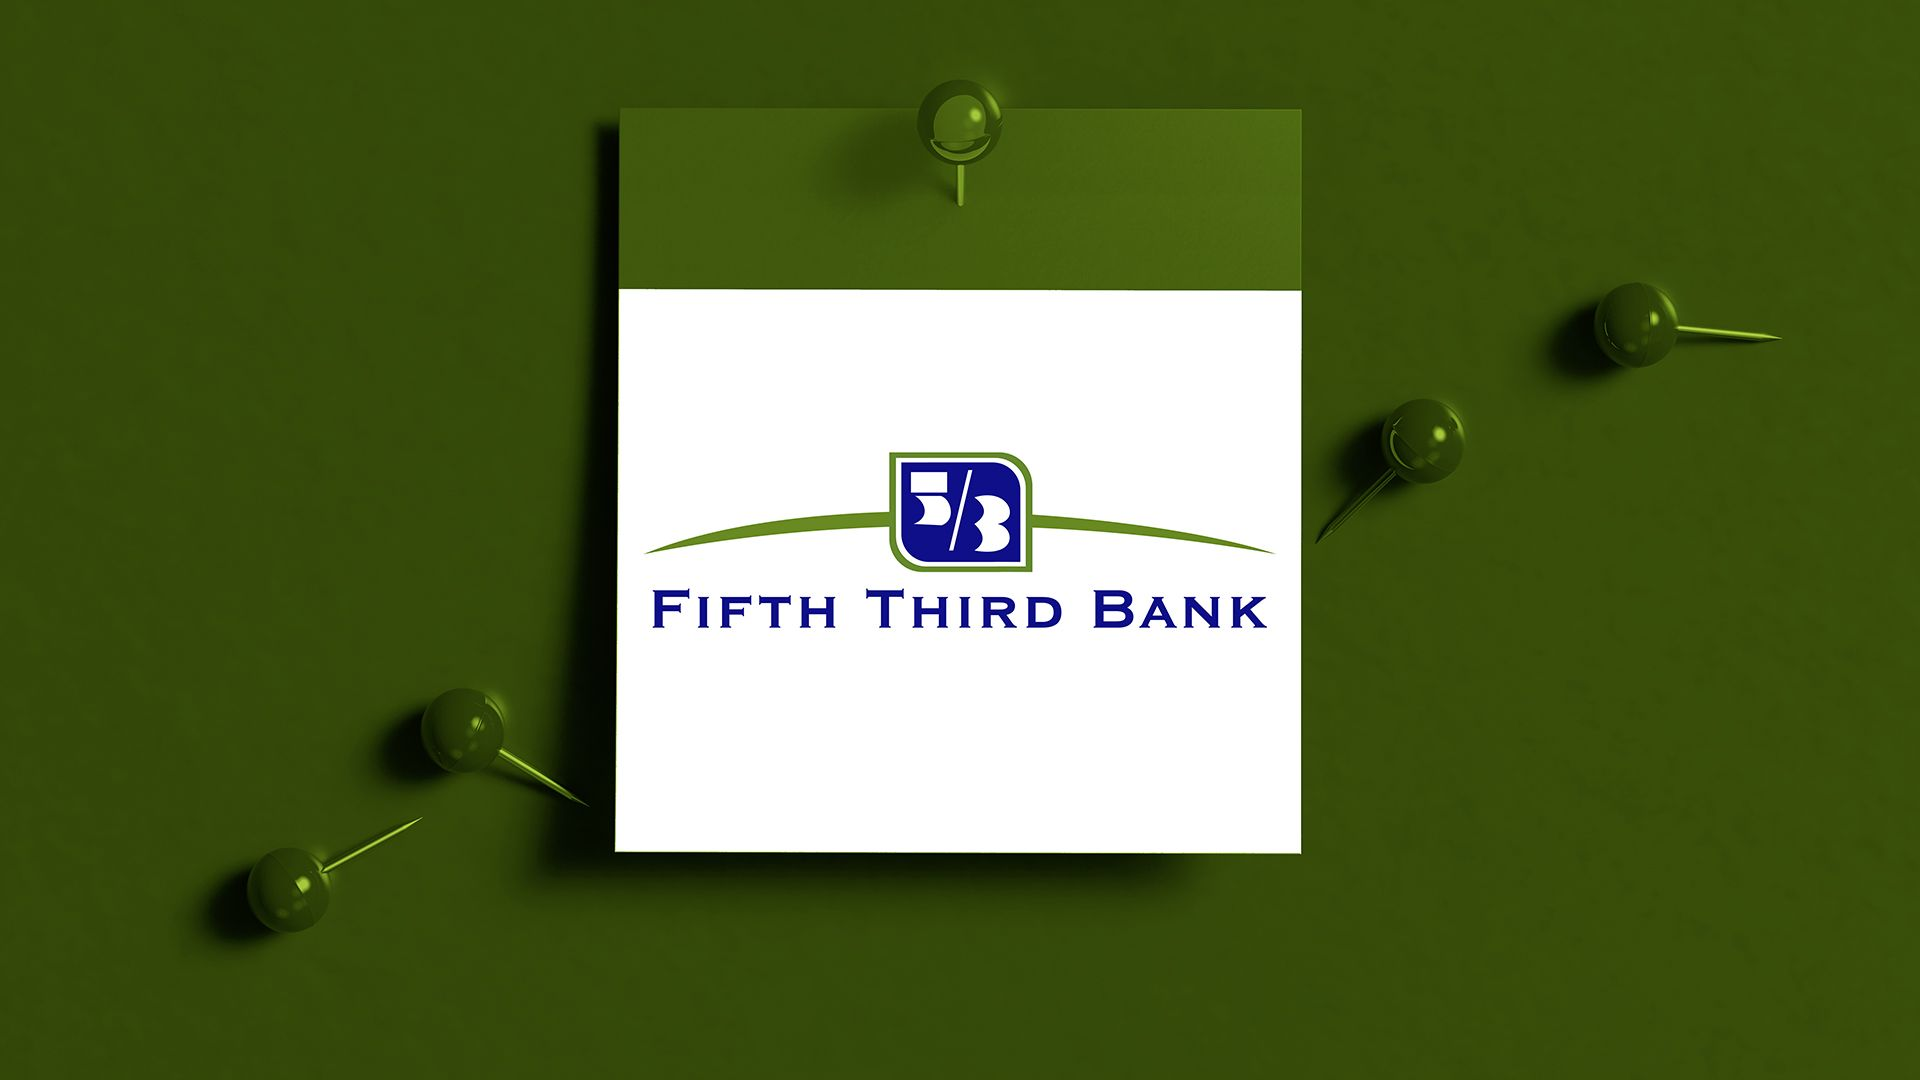 Fifth Third Bank Monthly Maintenance Fee